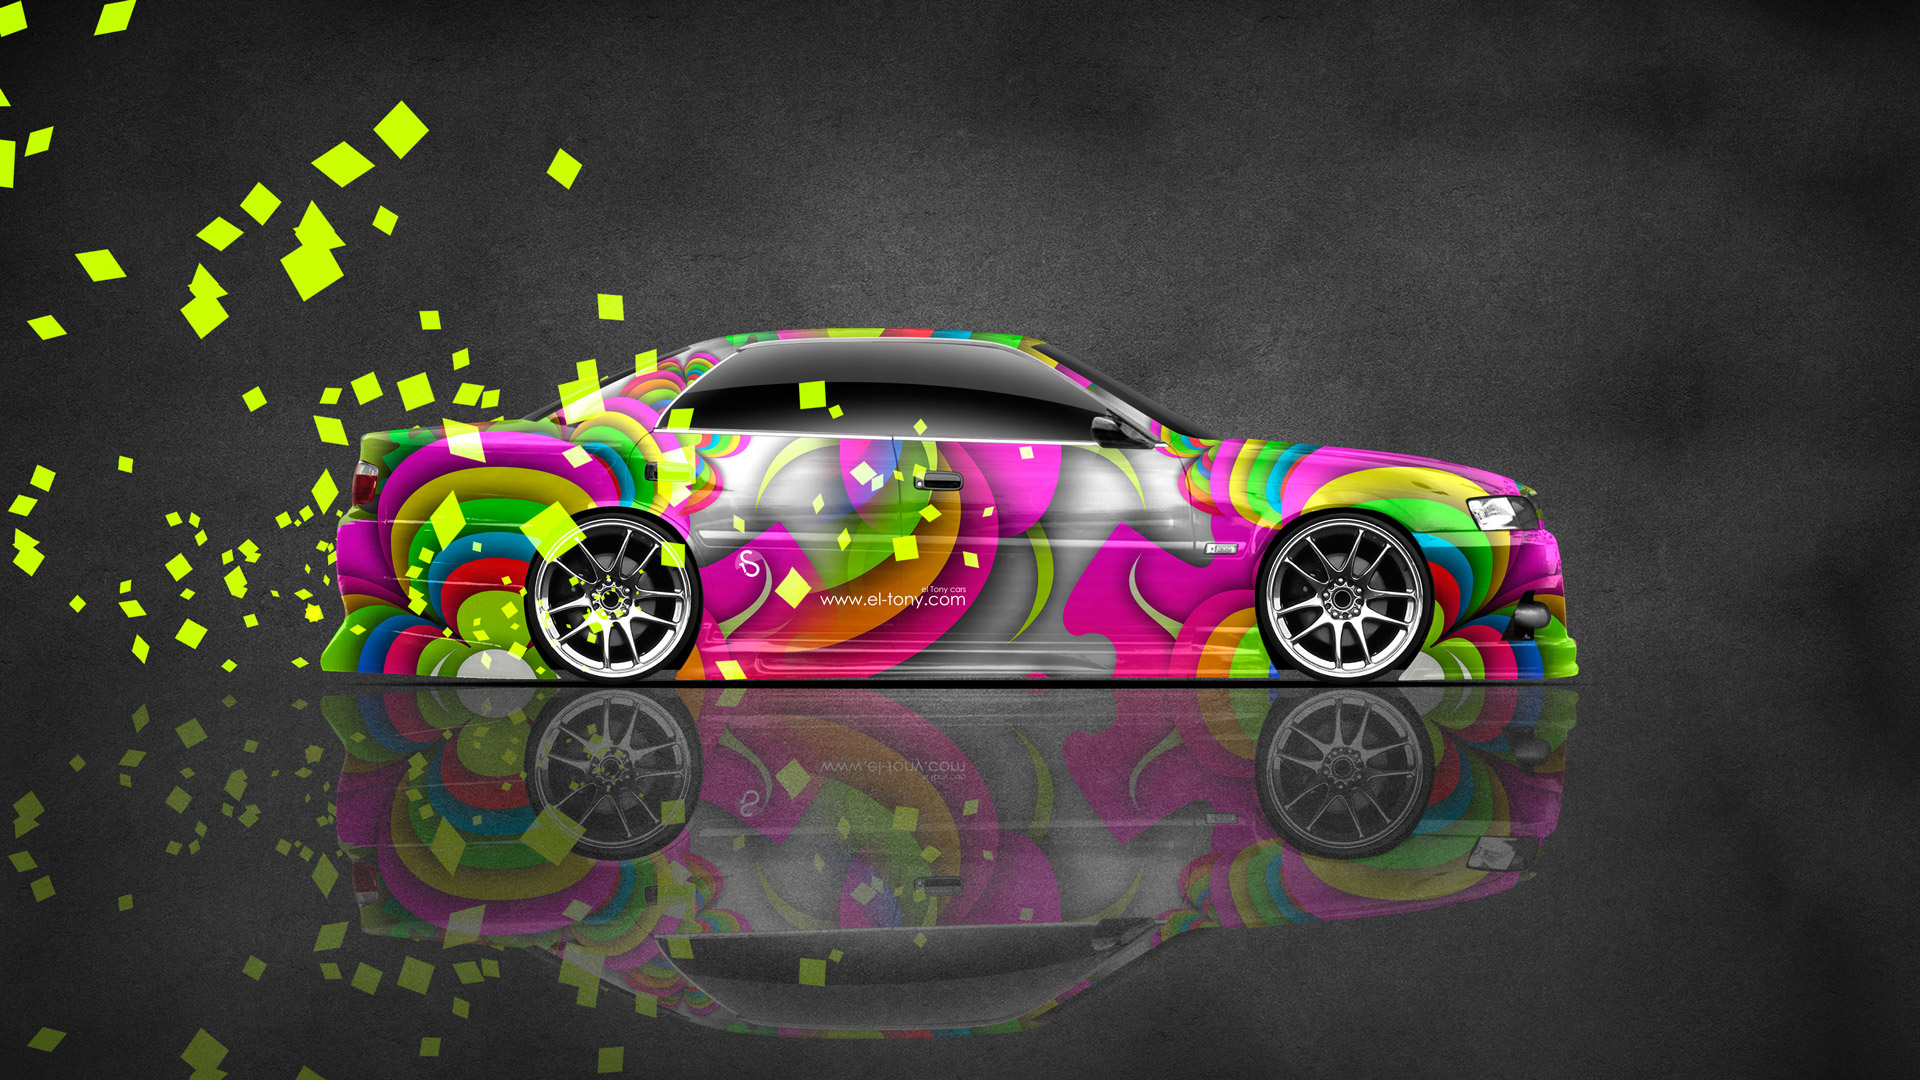 Exceptionnel Toyota Chaser JZX100 JDM Side Super Abstract Car